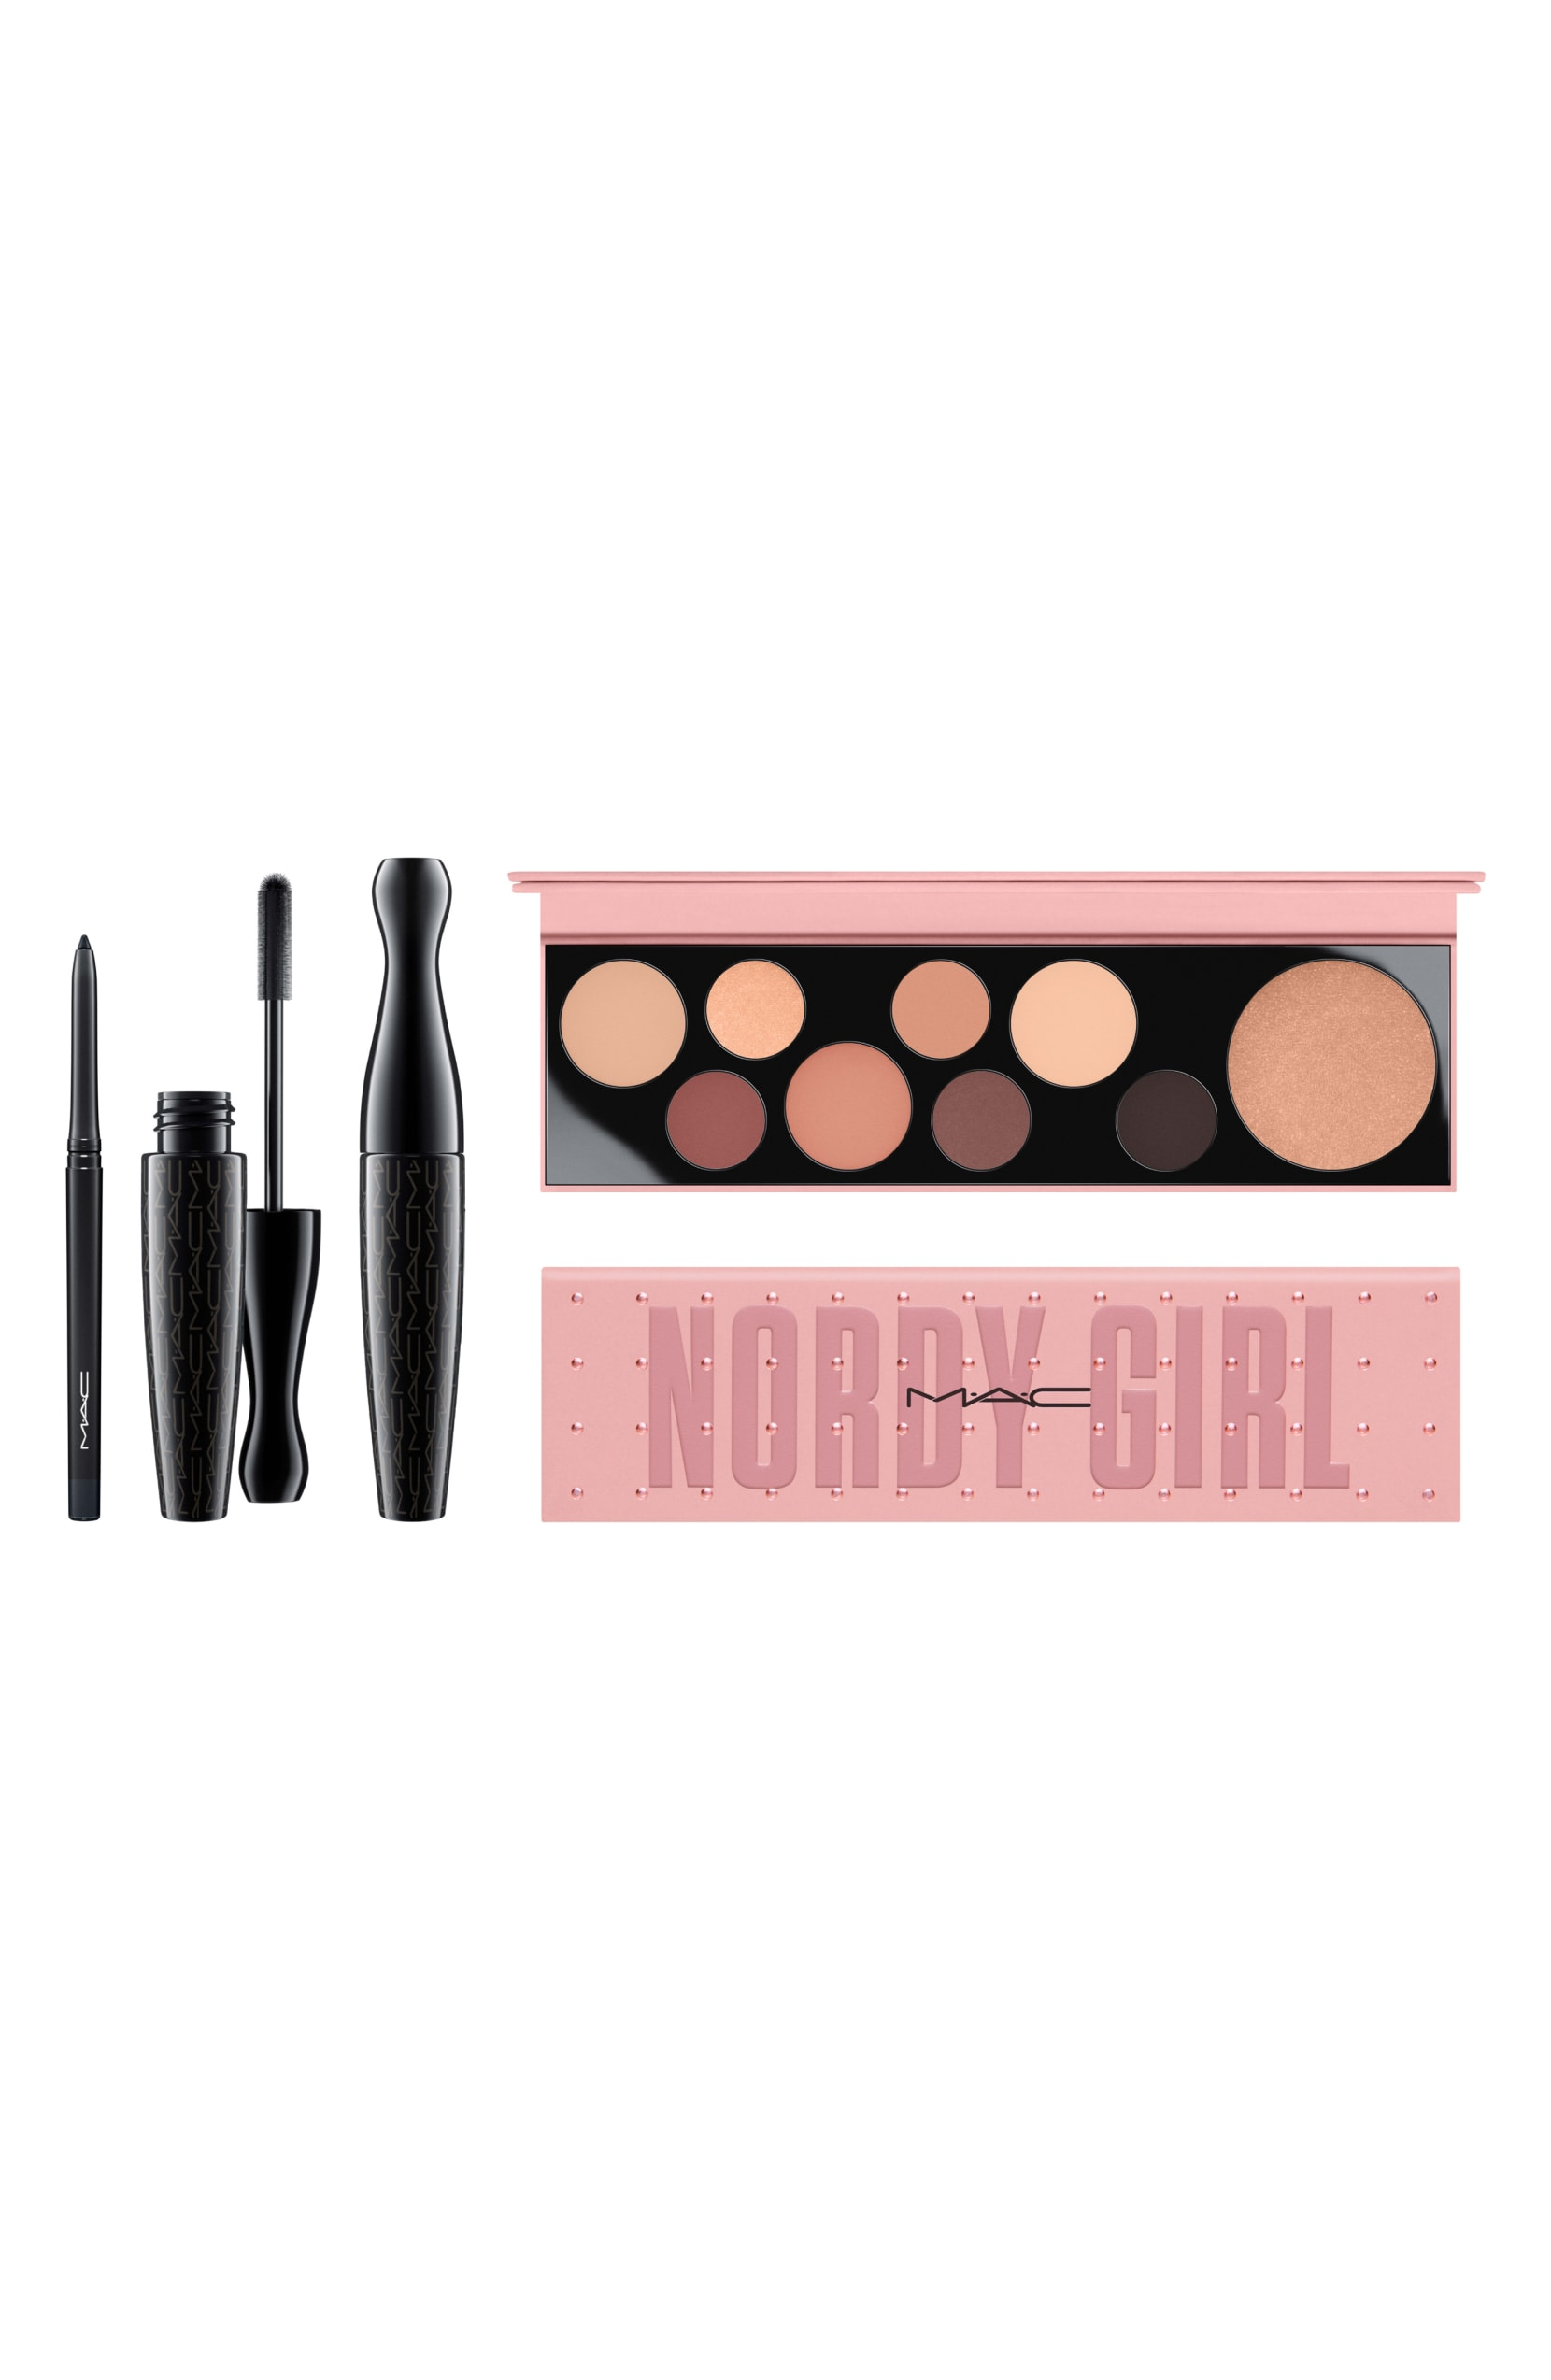 MAC Nordy Girl Matte Face & Eye Set. $44.50 ($202 Value). (Image: Nordstrom){ }